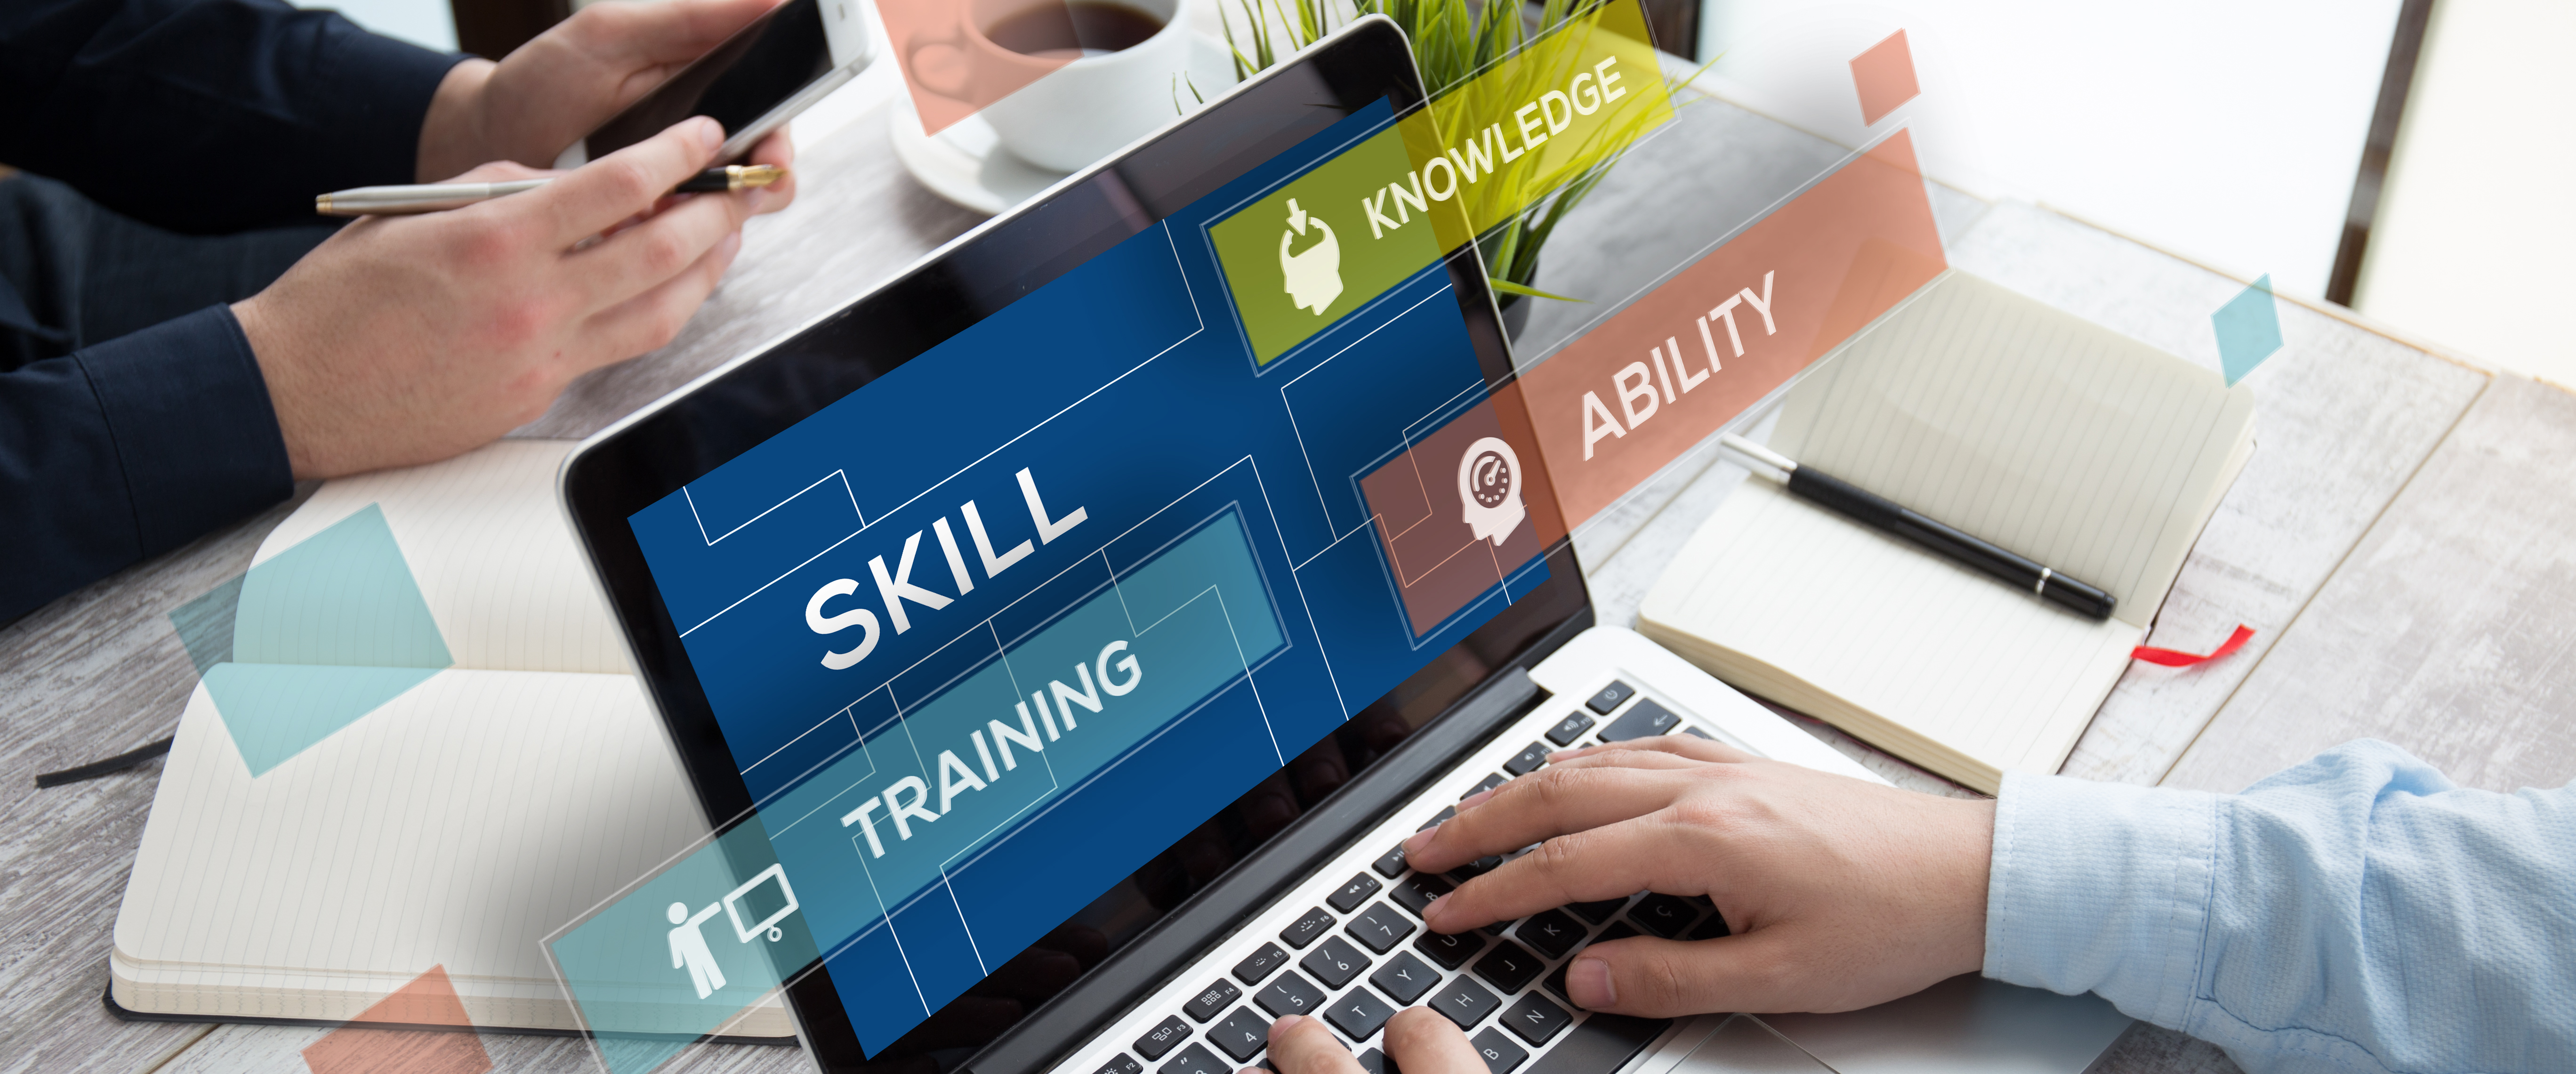 Skills Training Illustration